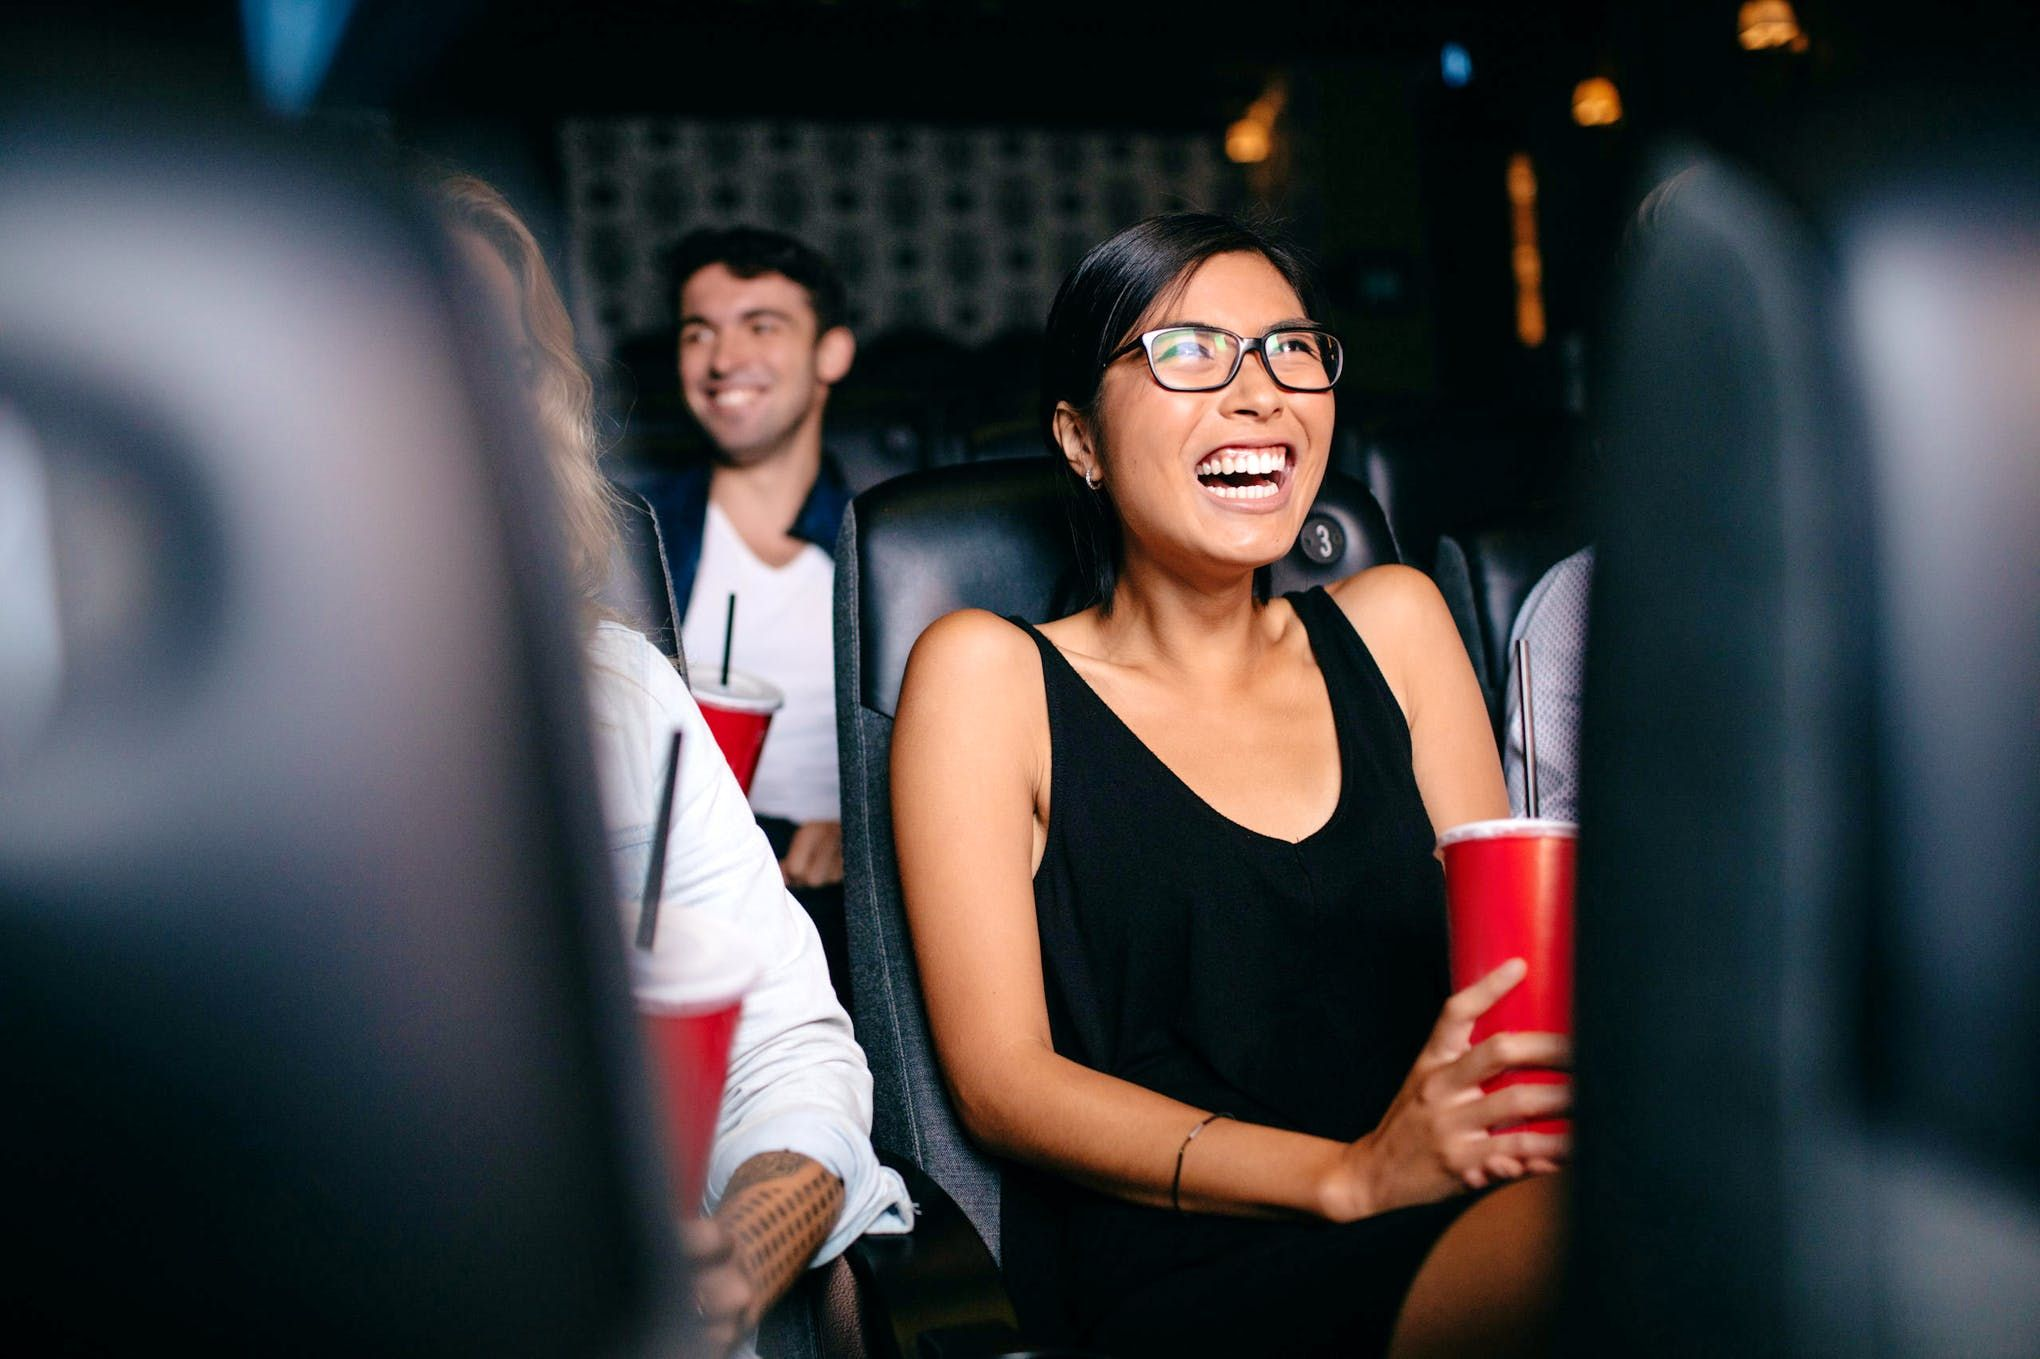 AMC Theatres to Reopen With 15Cent Movies on Thursday in